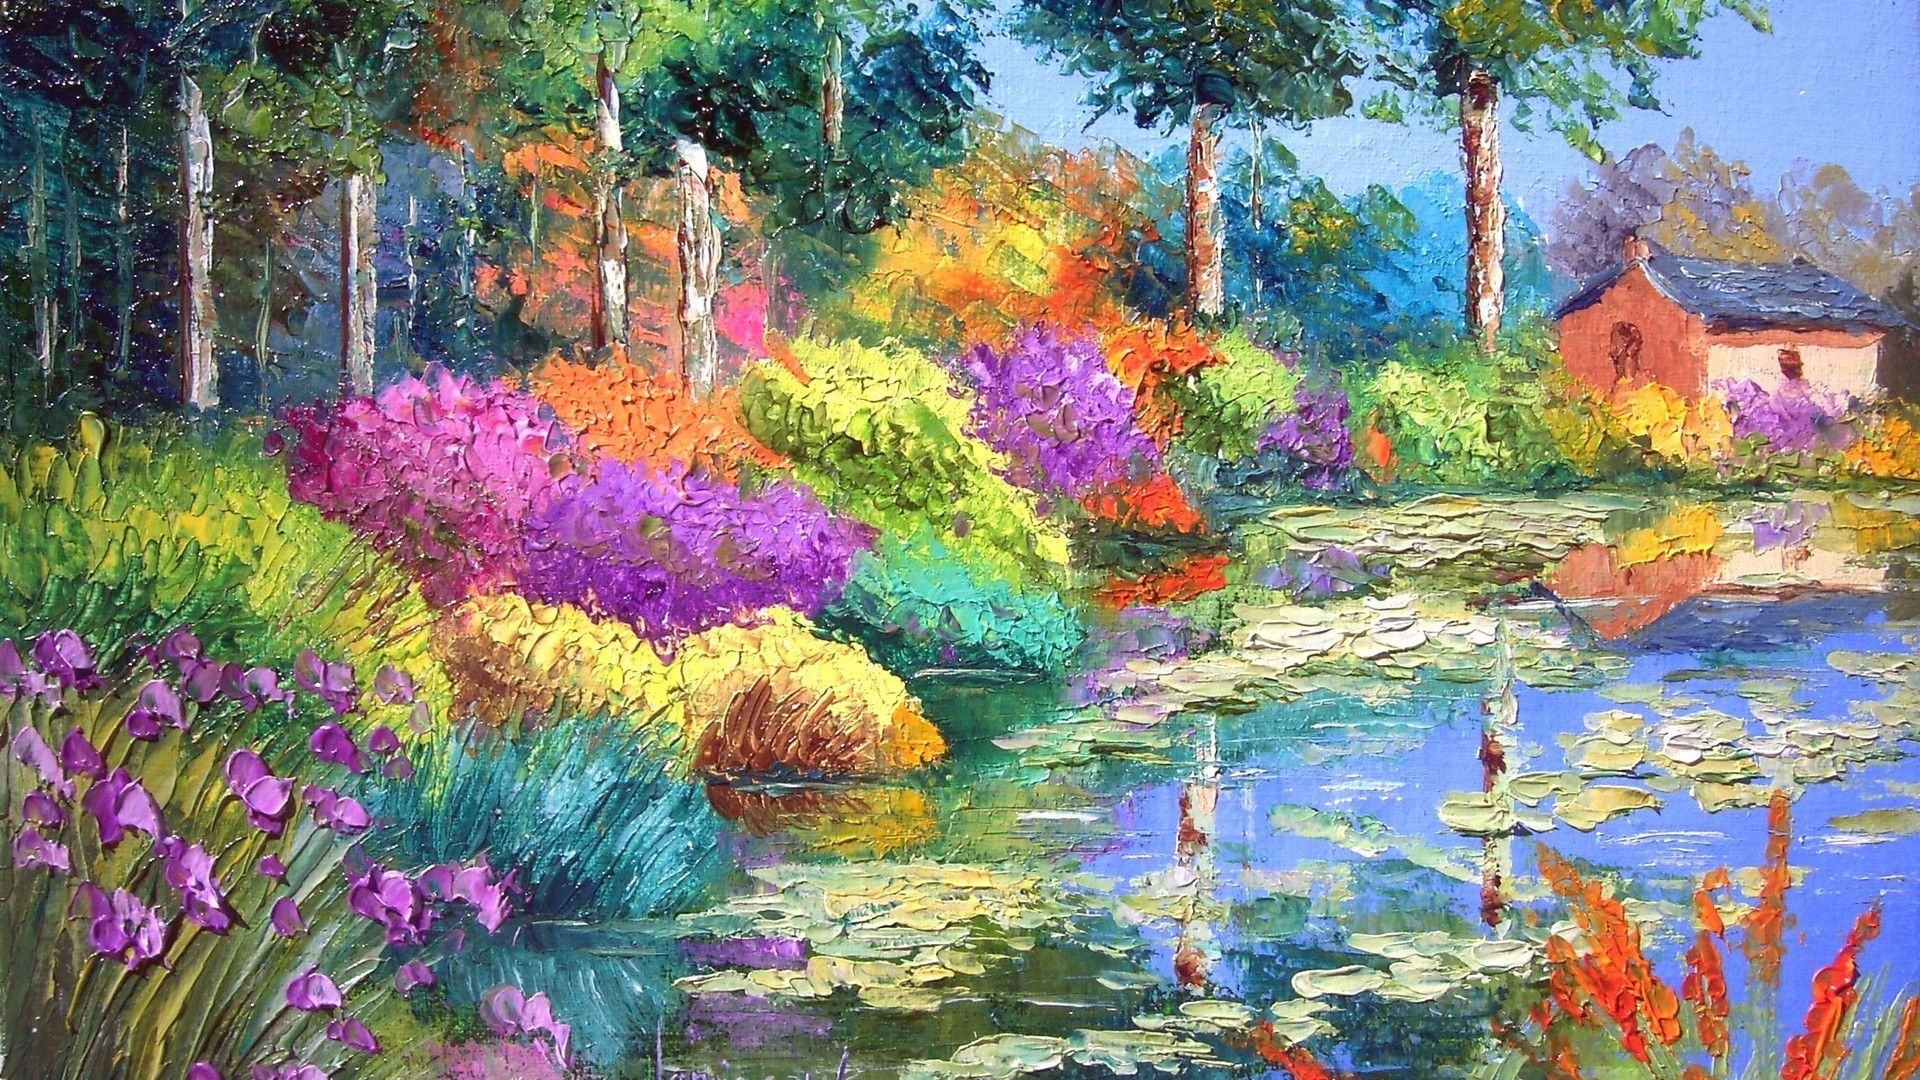 Famous Painting Wallpapers   Top Famous Painting Backgrounds 1920x1080